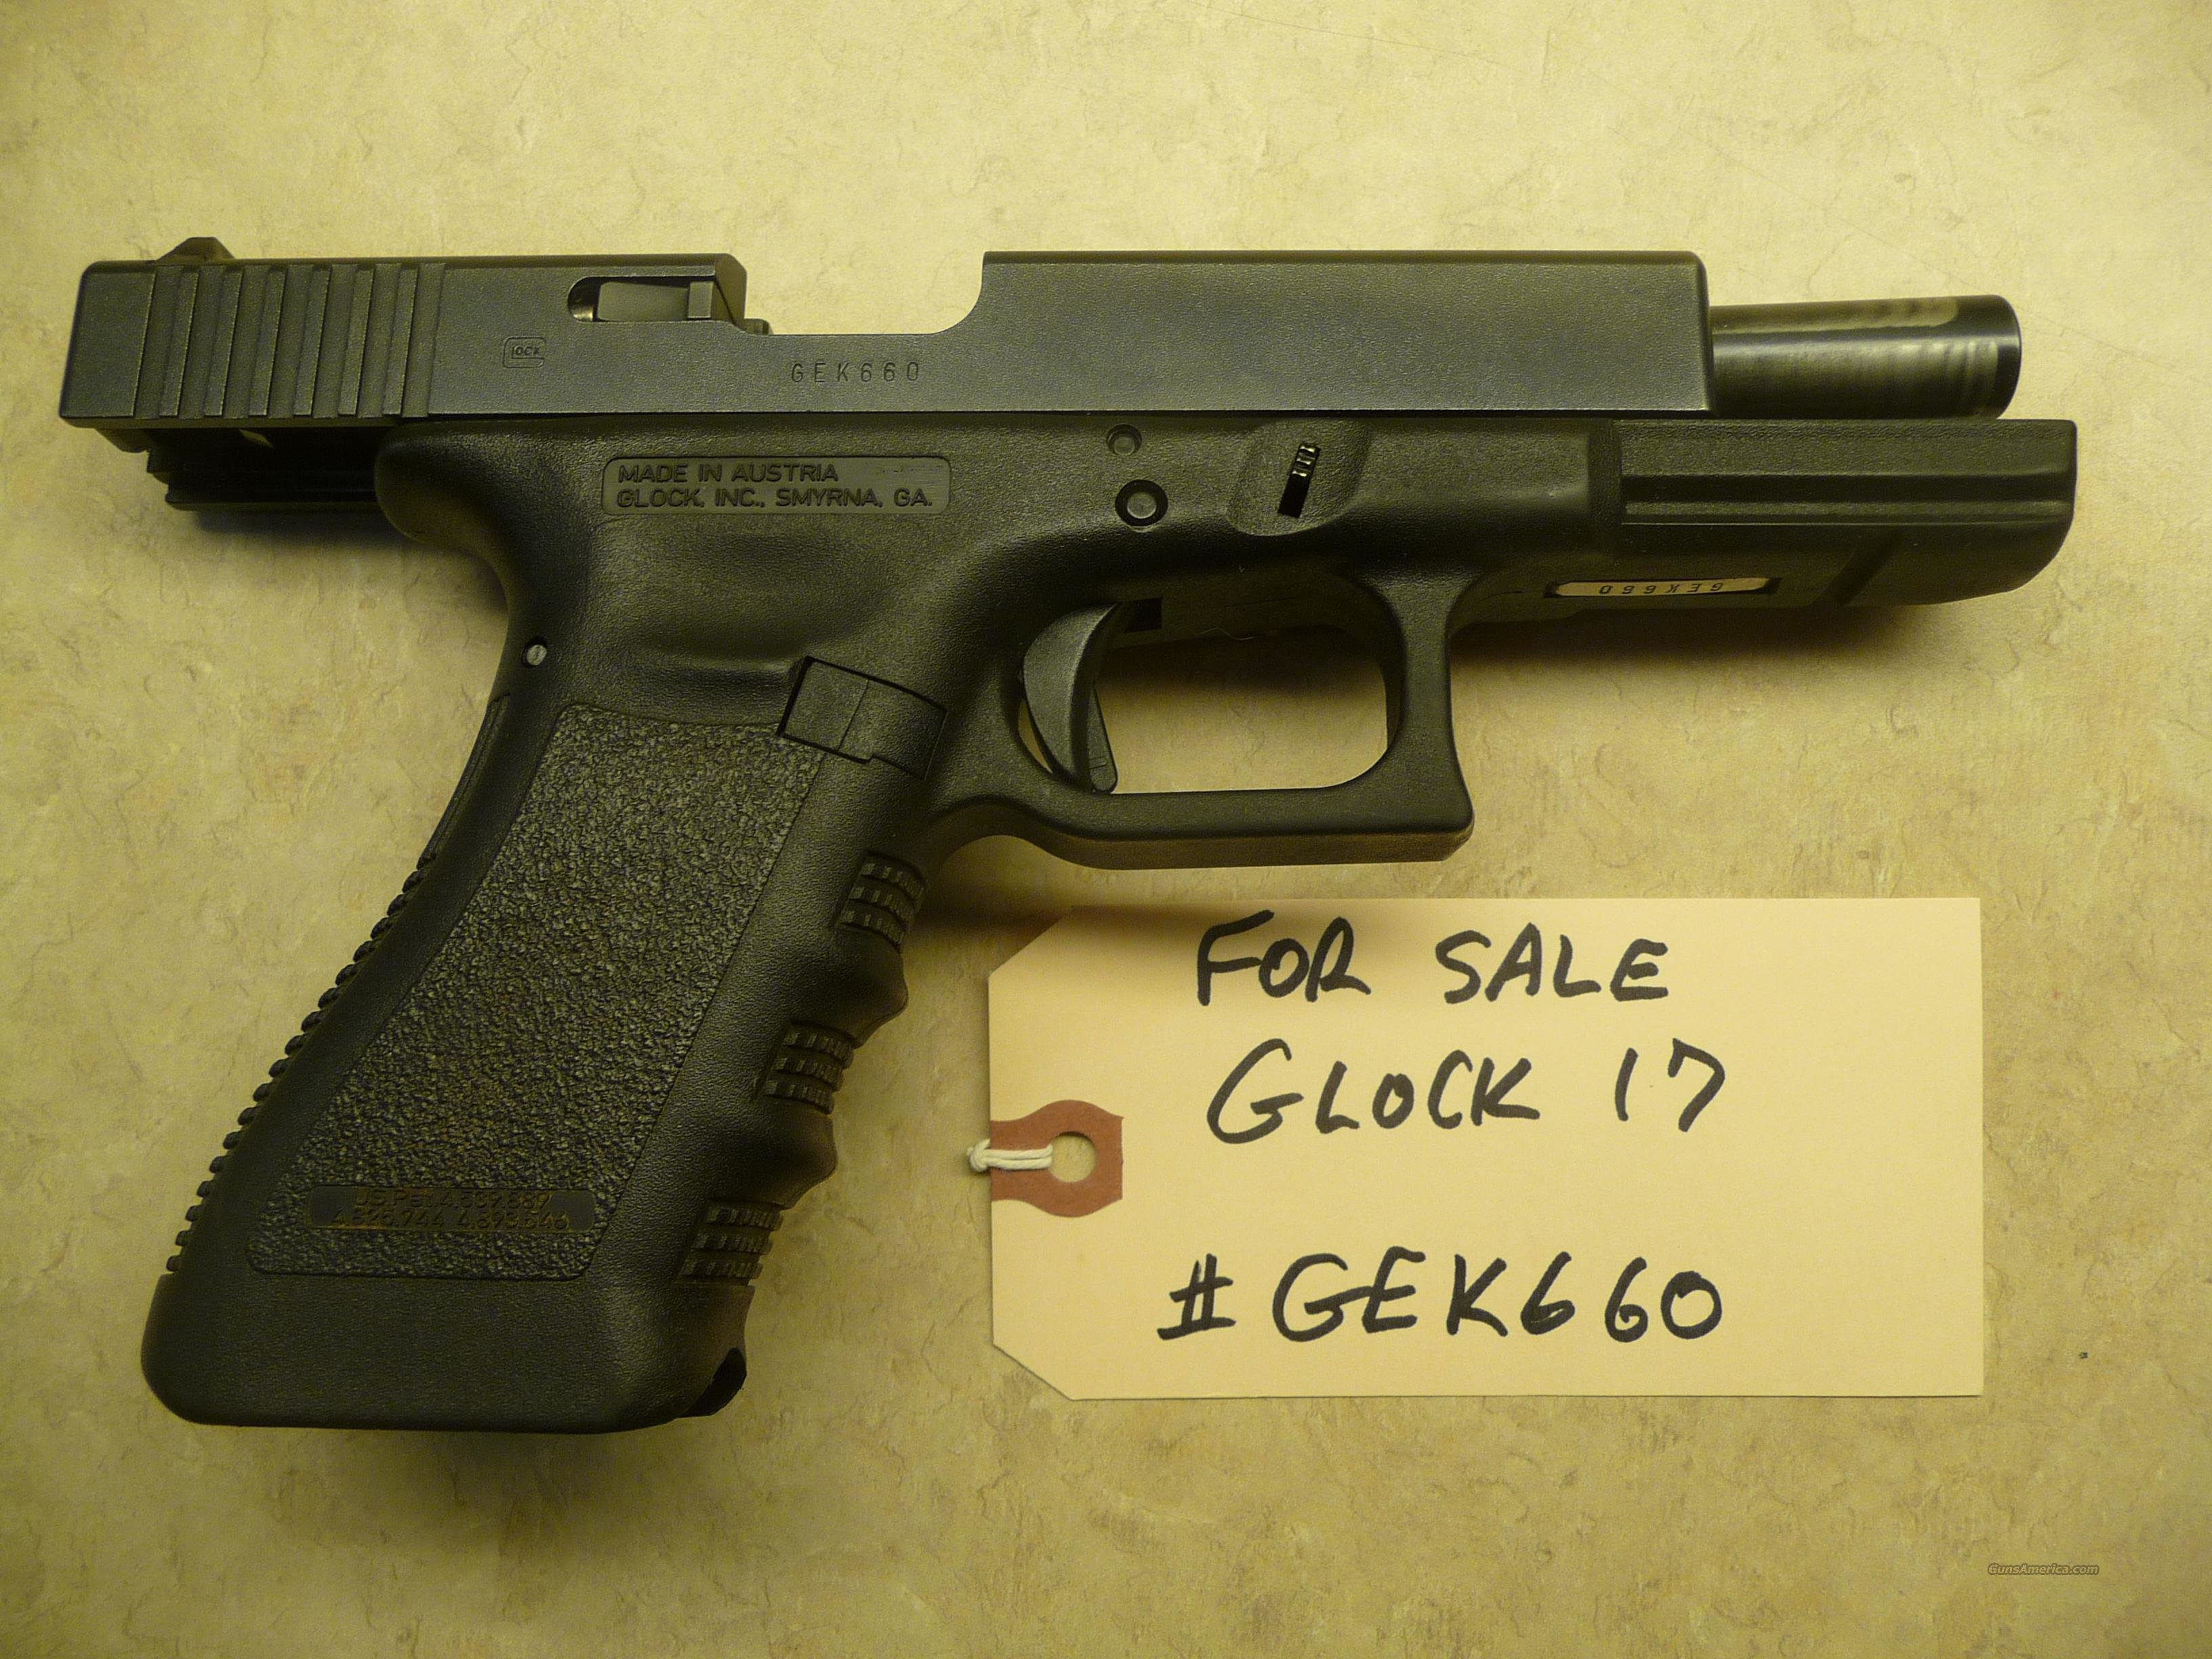 Used GLOCK 17 9mm Police Trade In with 3 used hi-cap Glock mags  Guns > Pistols > Glock Pistols > 17